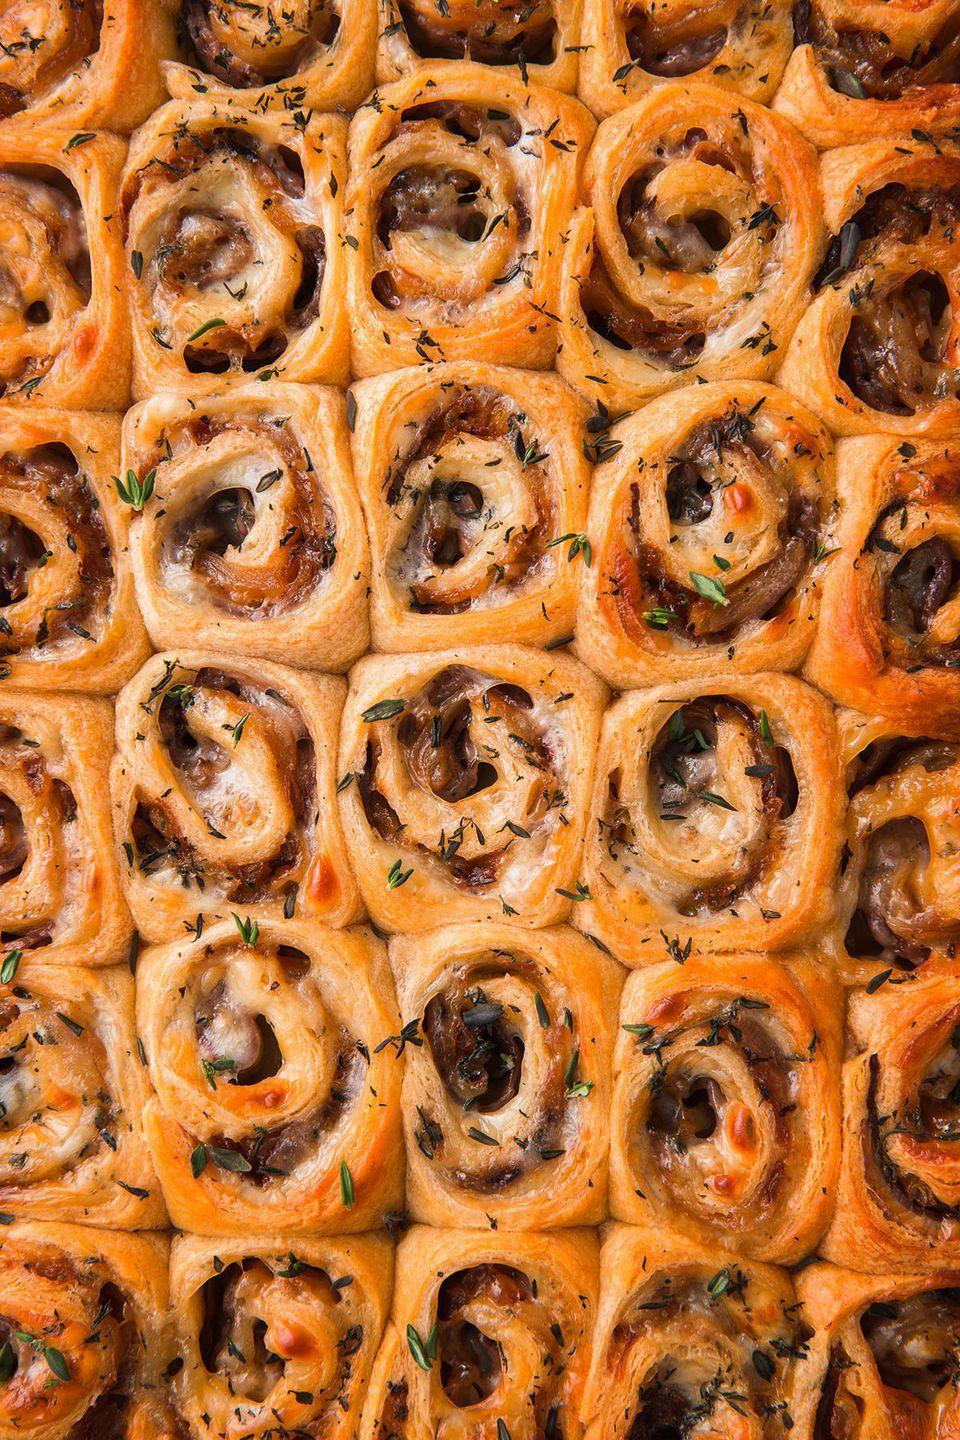 "<p>So deli roast beef may not count as steak, but these pinwheels are good enough to make an exception.</p><p>Get the recipe from <a href=""https://www.delish.com/cooking/recipe-ideas/recipes/a52278/french-dip-roll-ups-recipe/"" rel=""nofollow noopener"" target=""_blank"" data-ylk=""slk:Delish"" class=""link rapid-noclick-resp"">Delish</a>.</p>"